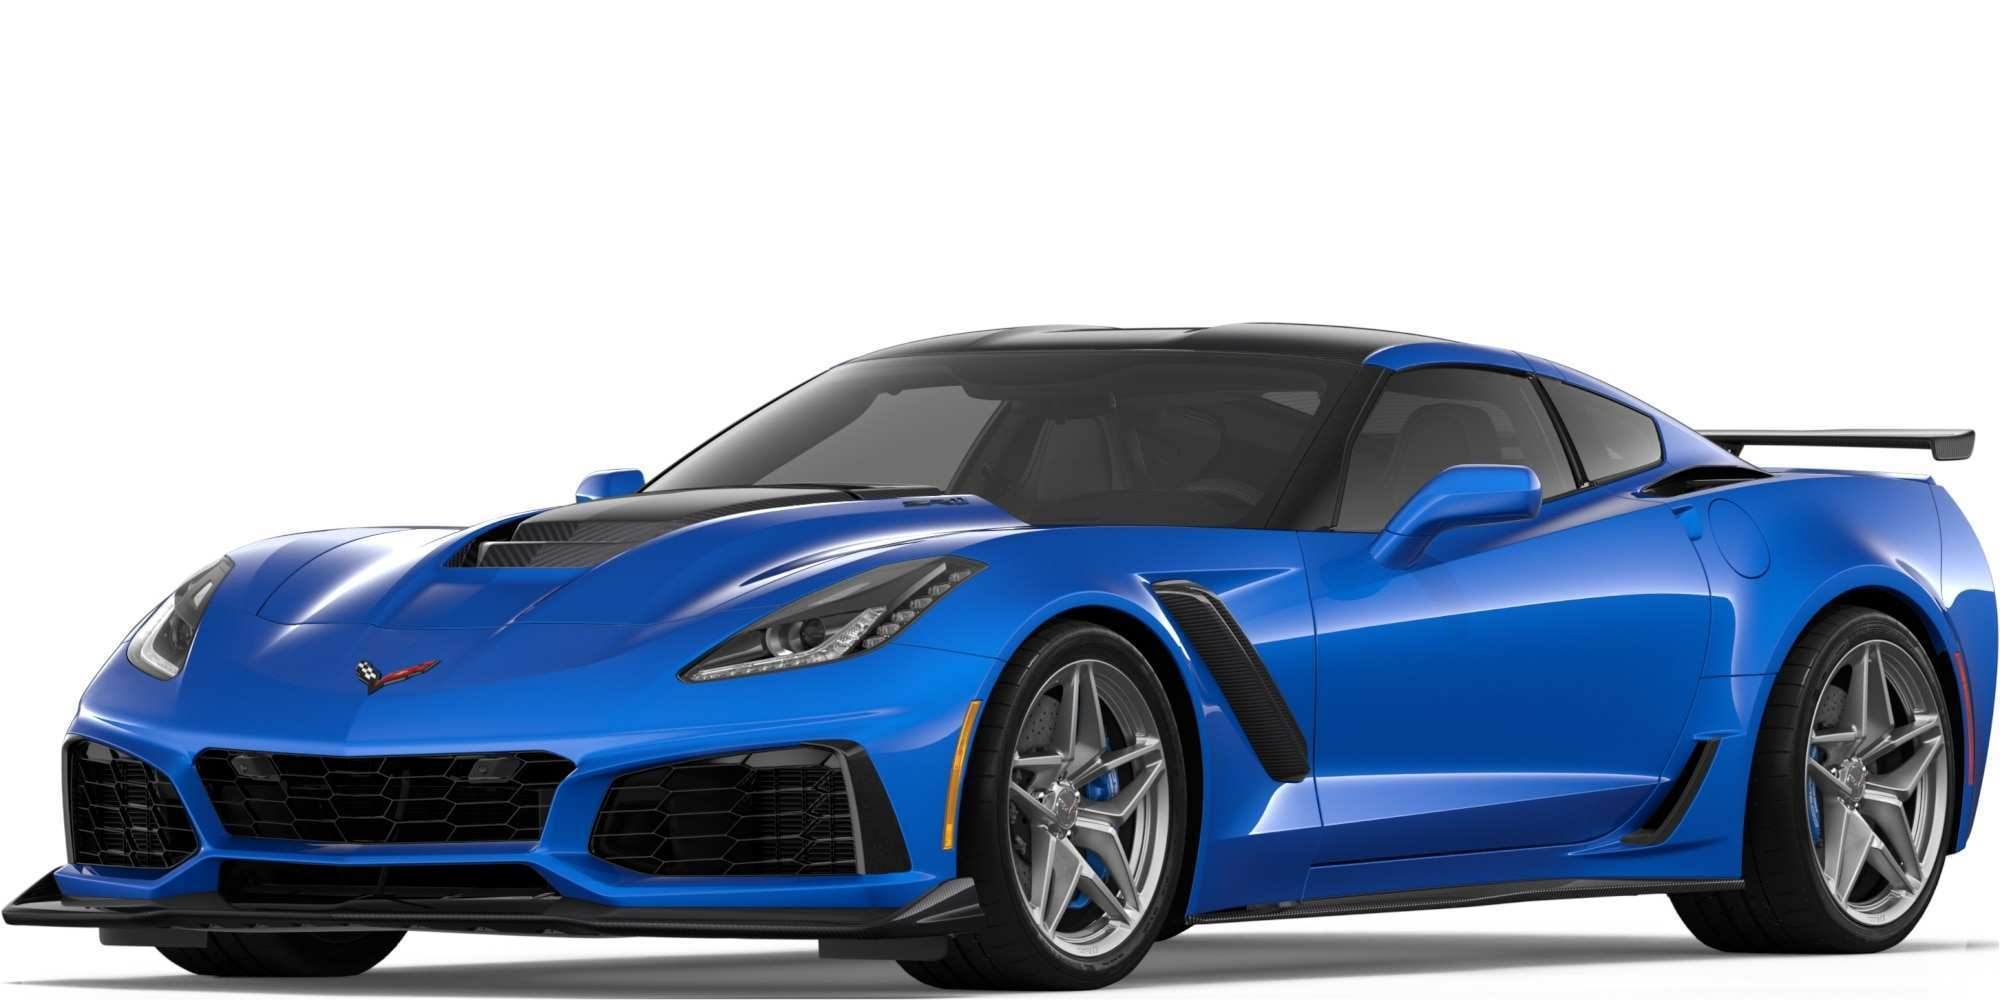 88 A 2019 Chevrolet Corvette Zr1 Is Gms Most Powerful Car Ever Redesign